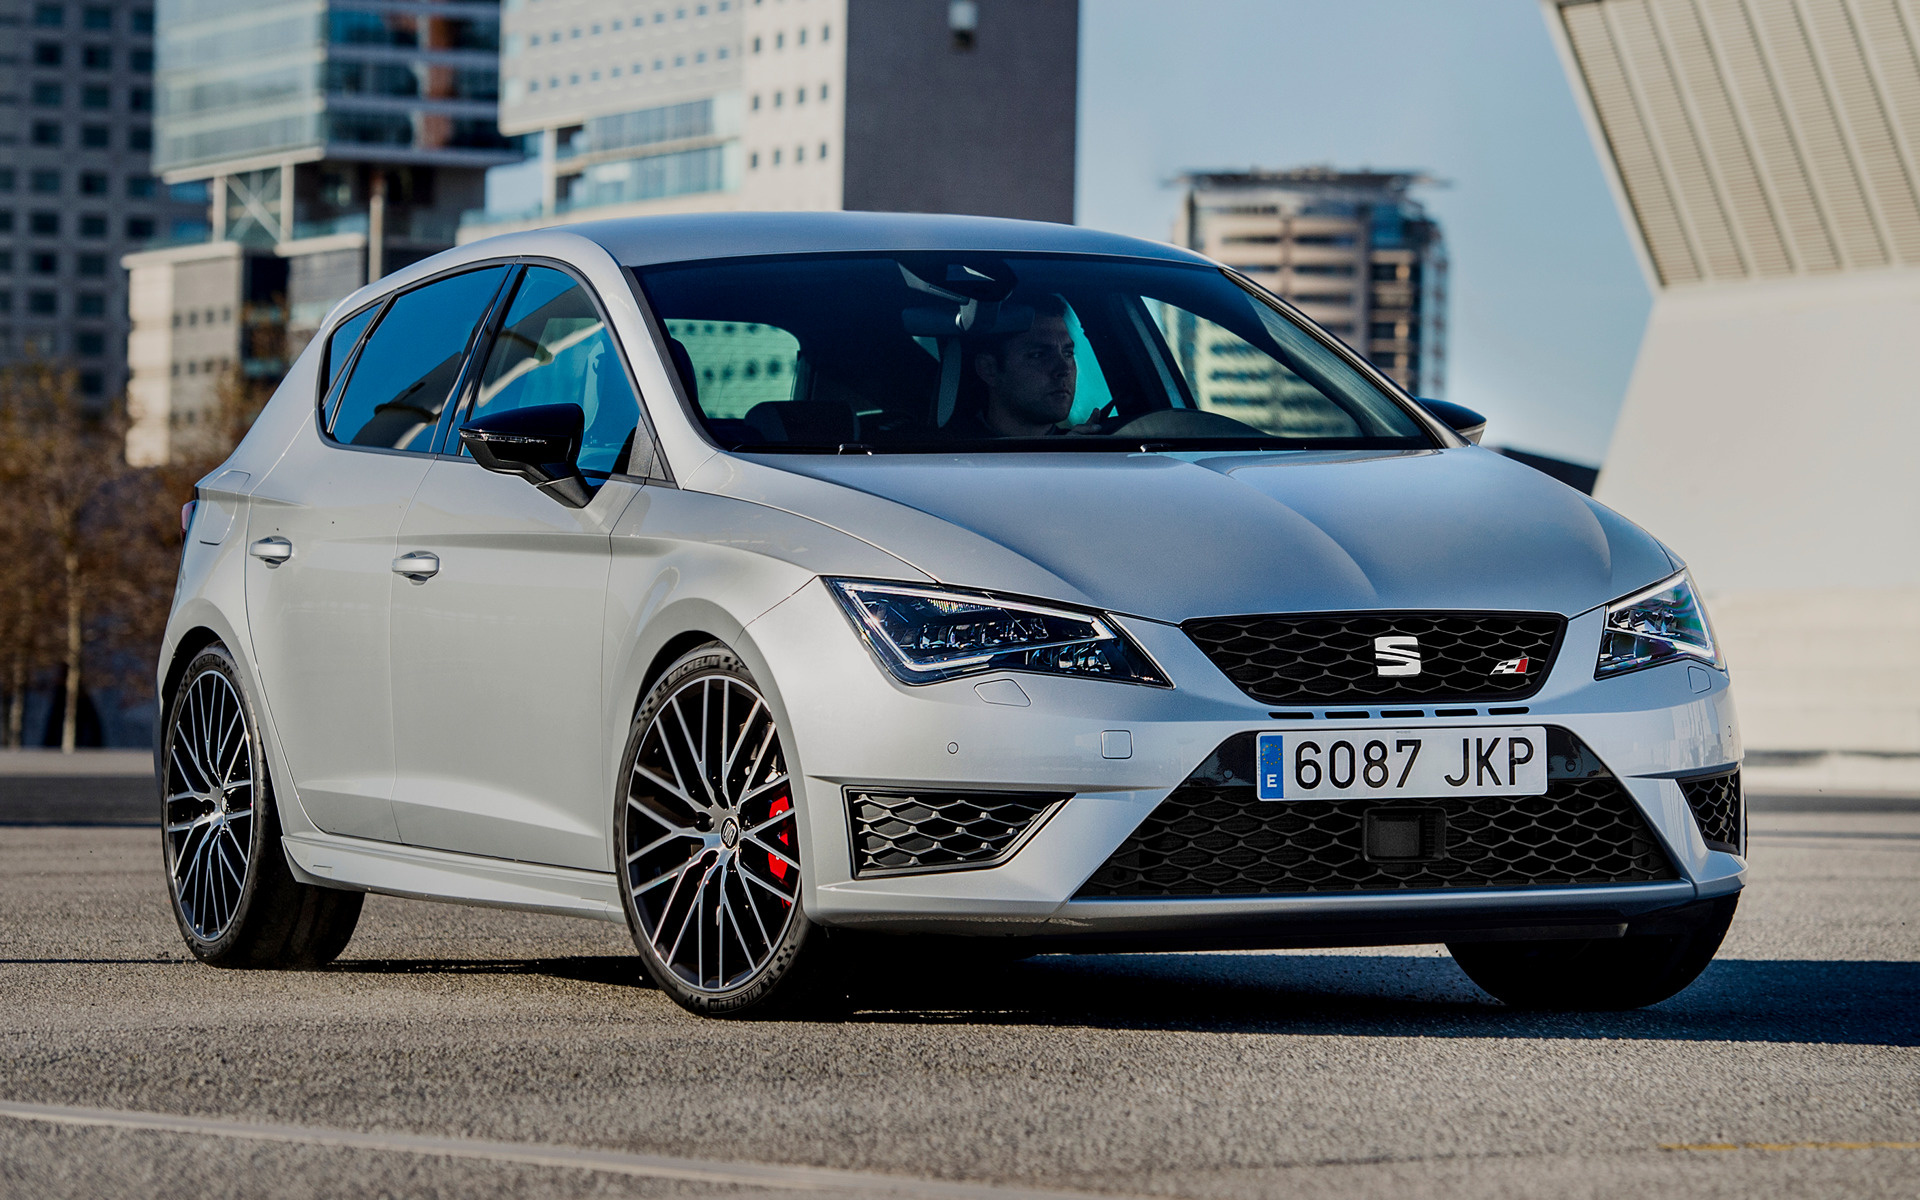 Seat Leon Cupra 290 (2015) Wallpapers and HD Images - Car ...